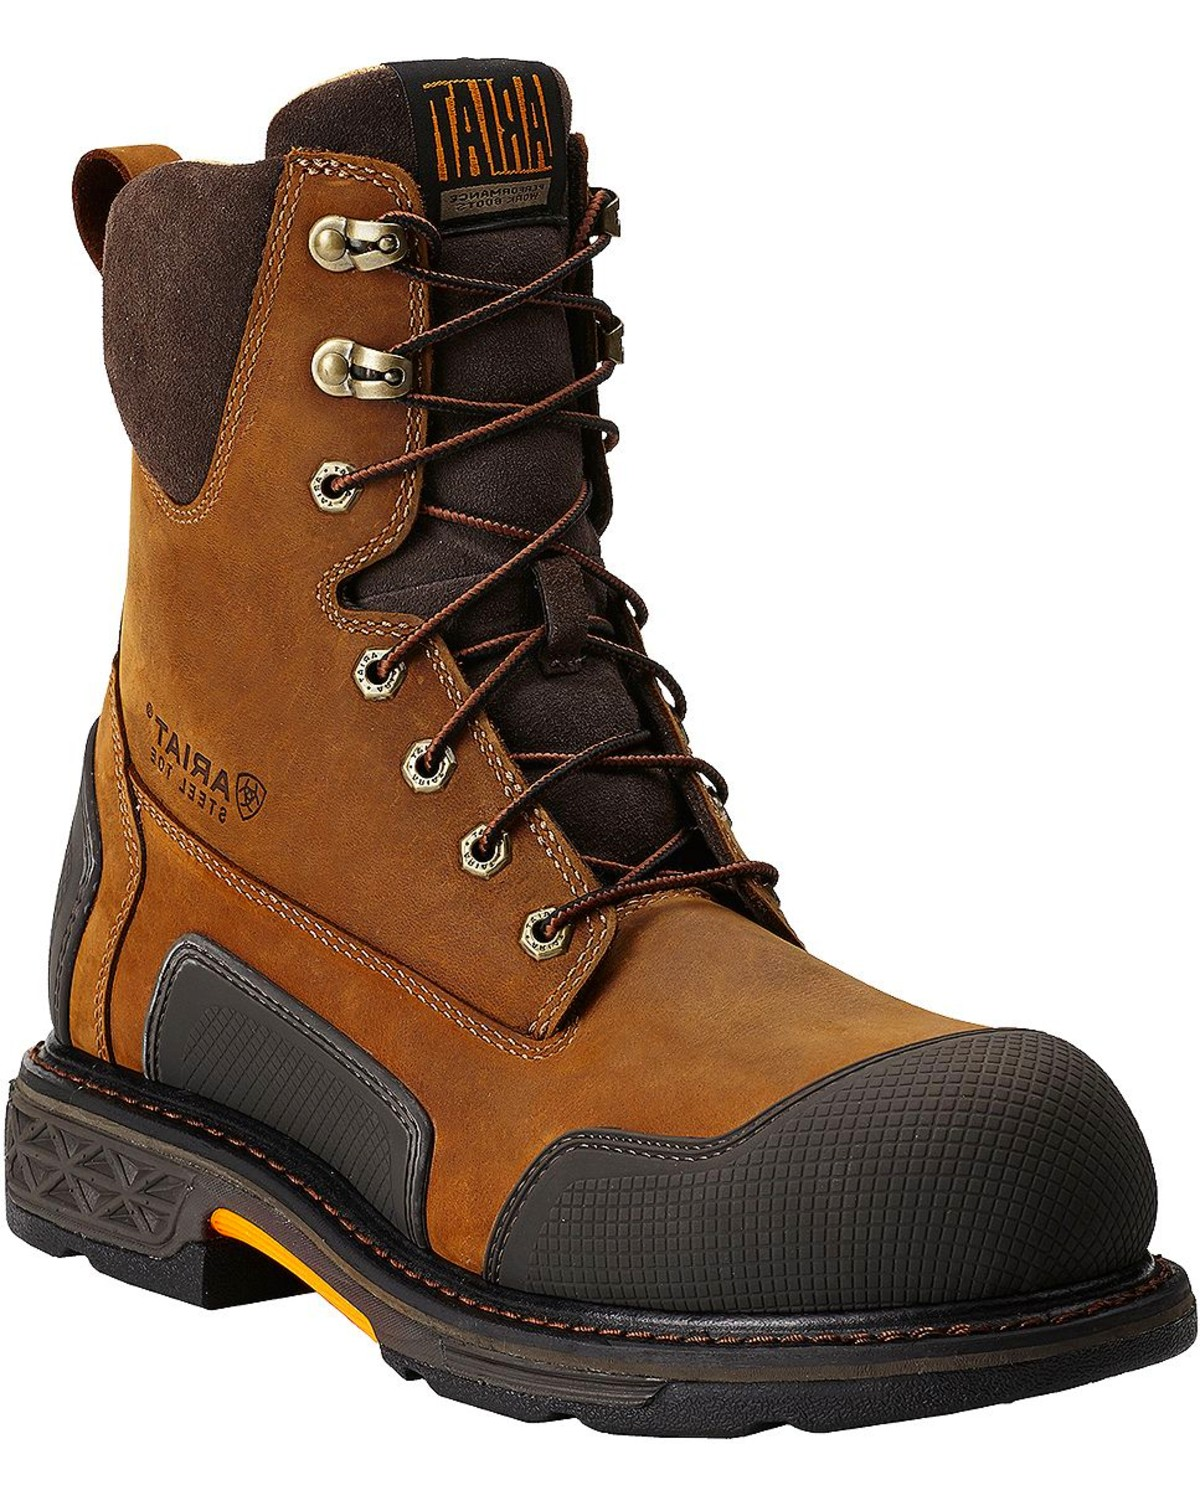 Ariat Overdrive Xtr 8 Quot Lace Up Side Zipper Work Boots